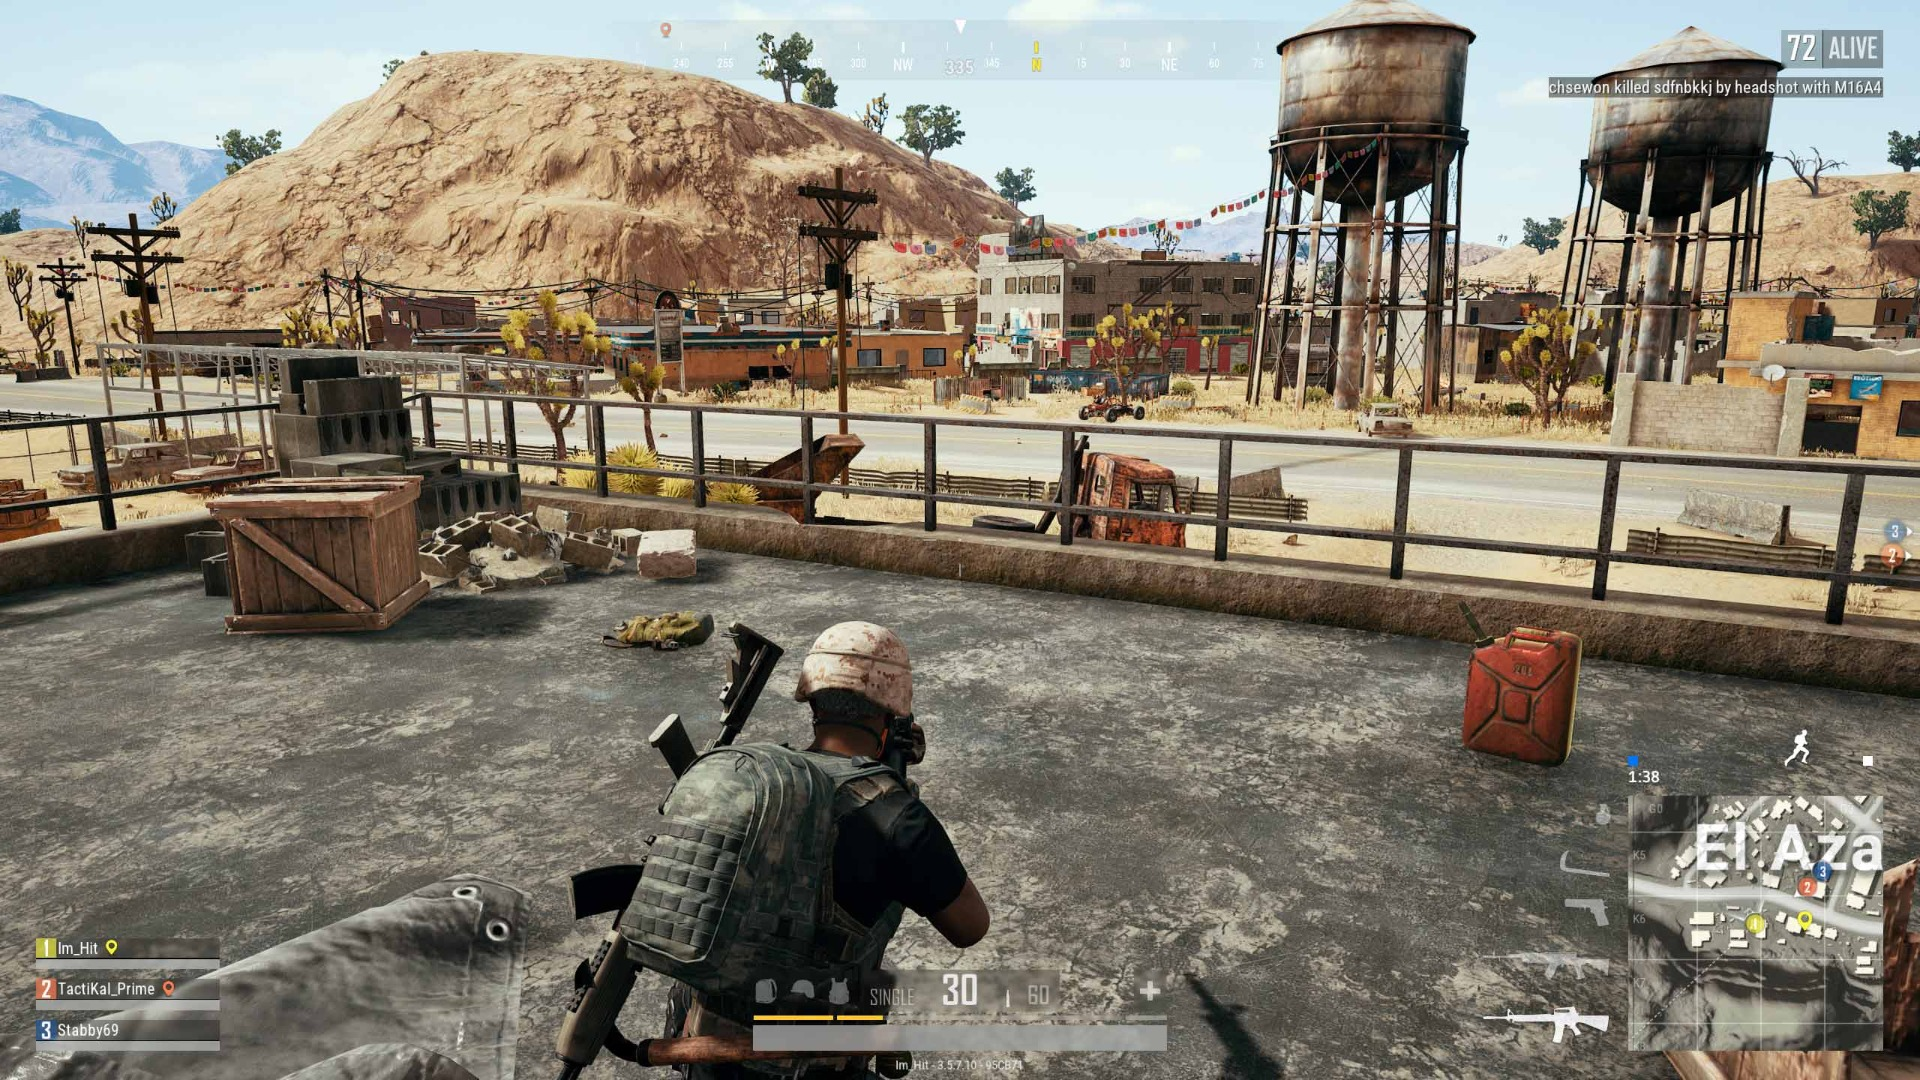 PlayerUnknown's Battlegrounds Gameplay And Performance Review: An Addictive Masterpiece